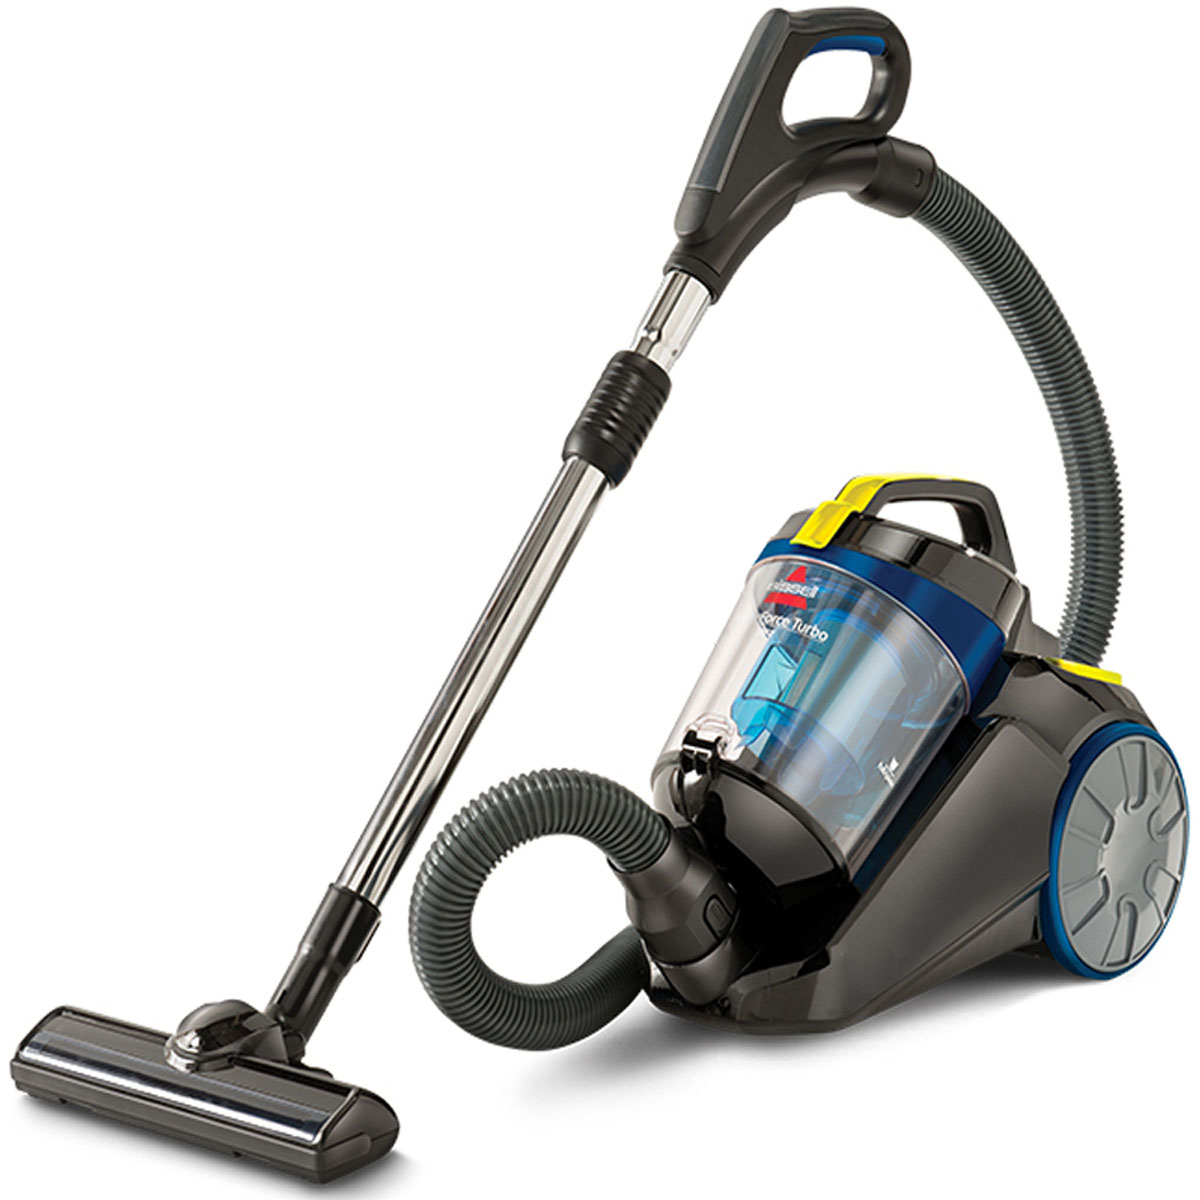 Bissell 1292U Powerforce Vacuum Cleaner